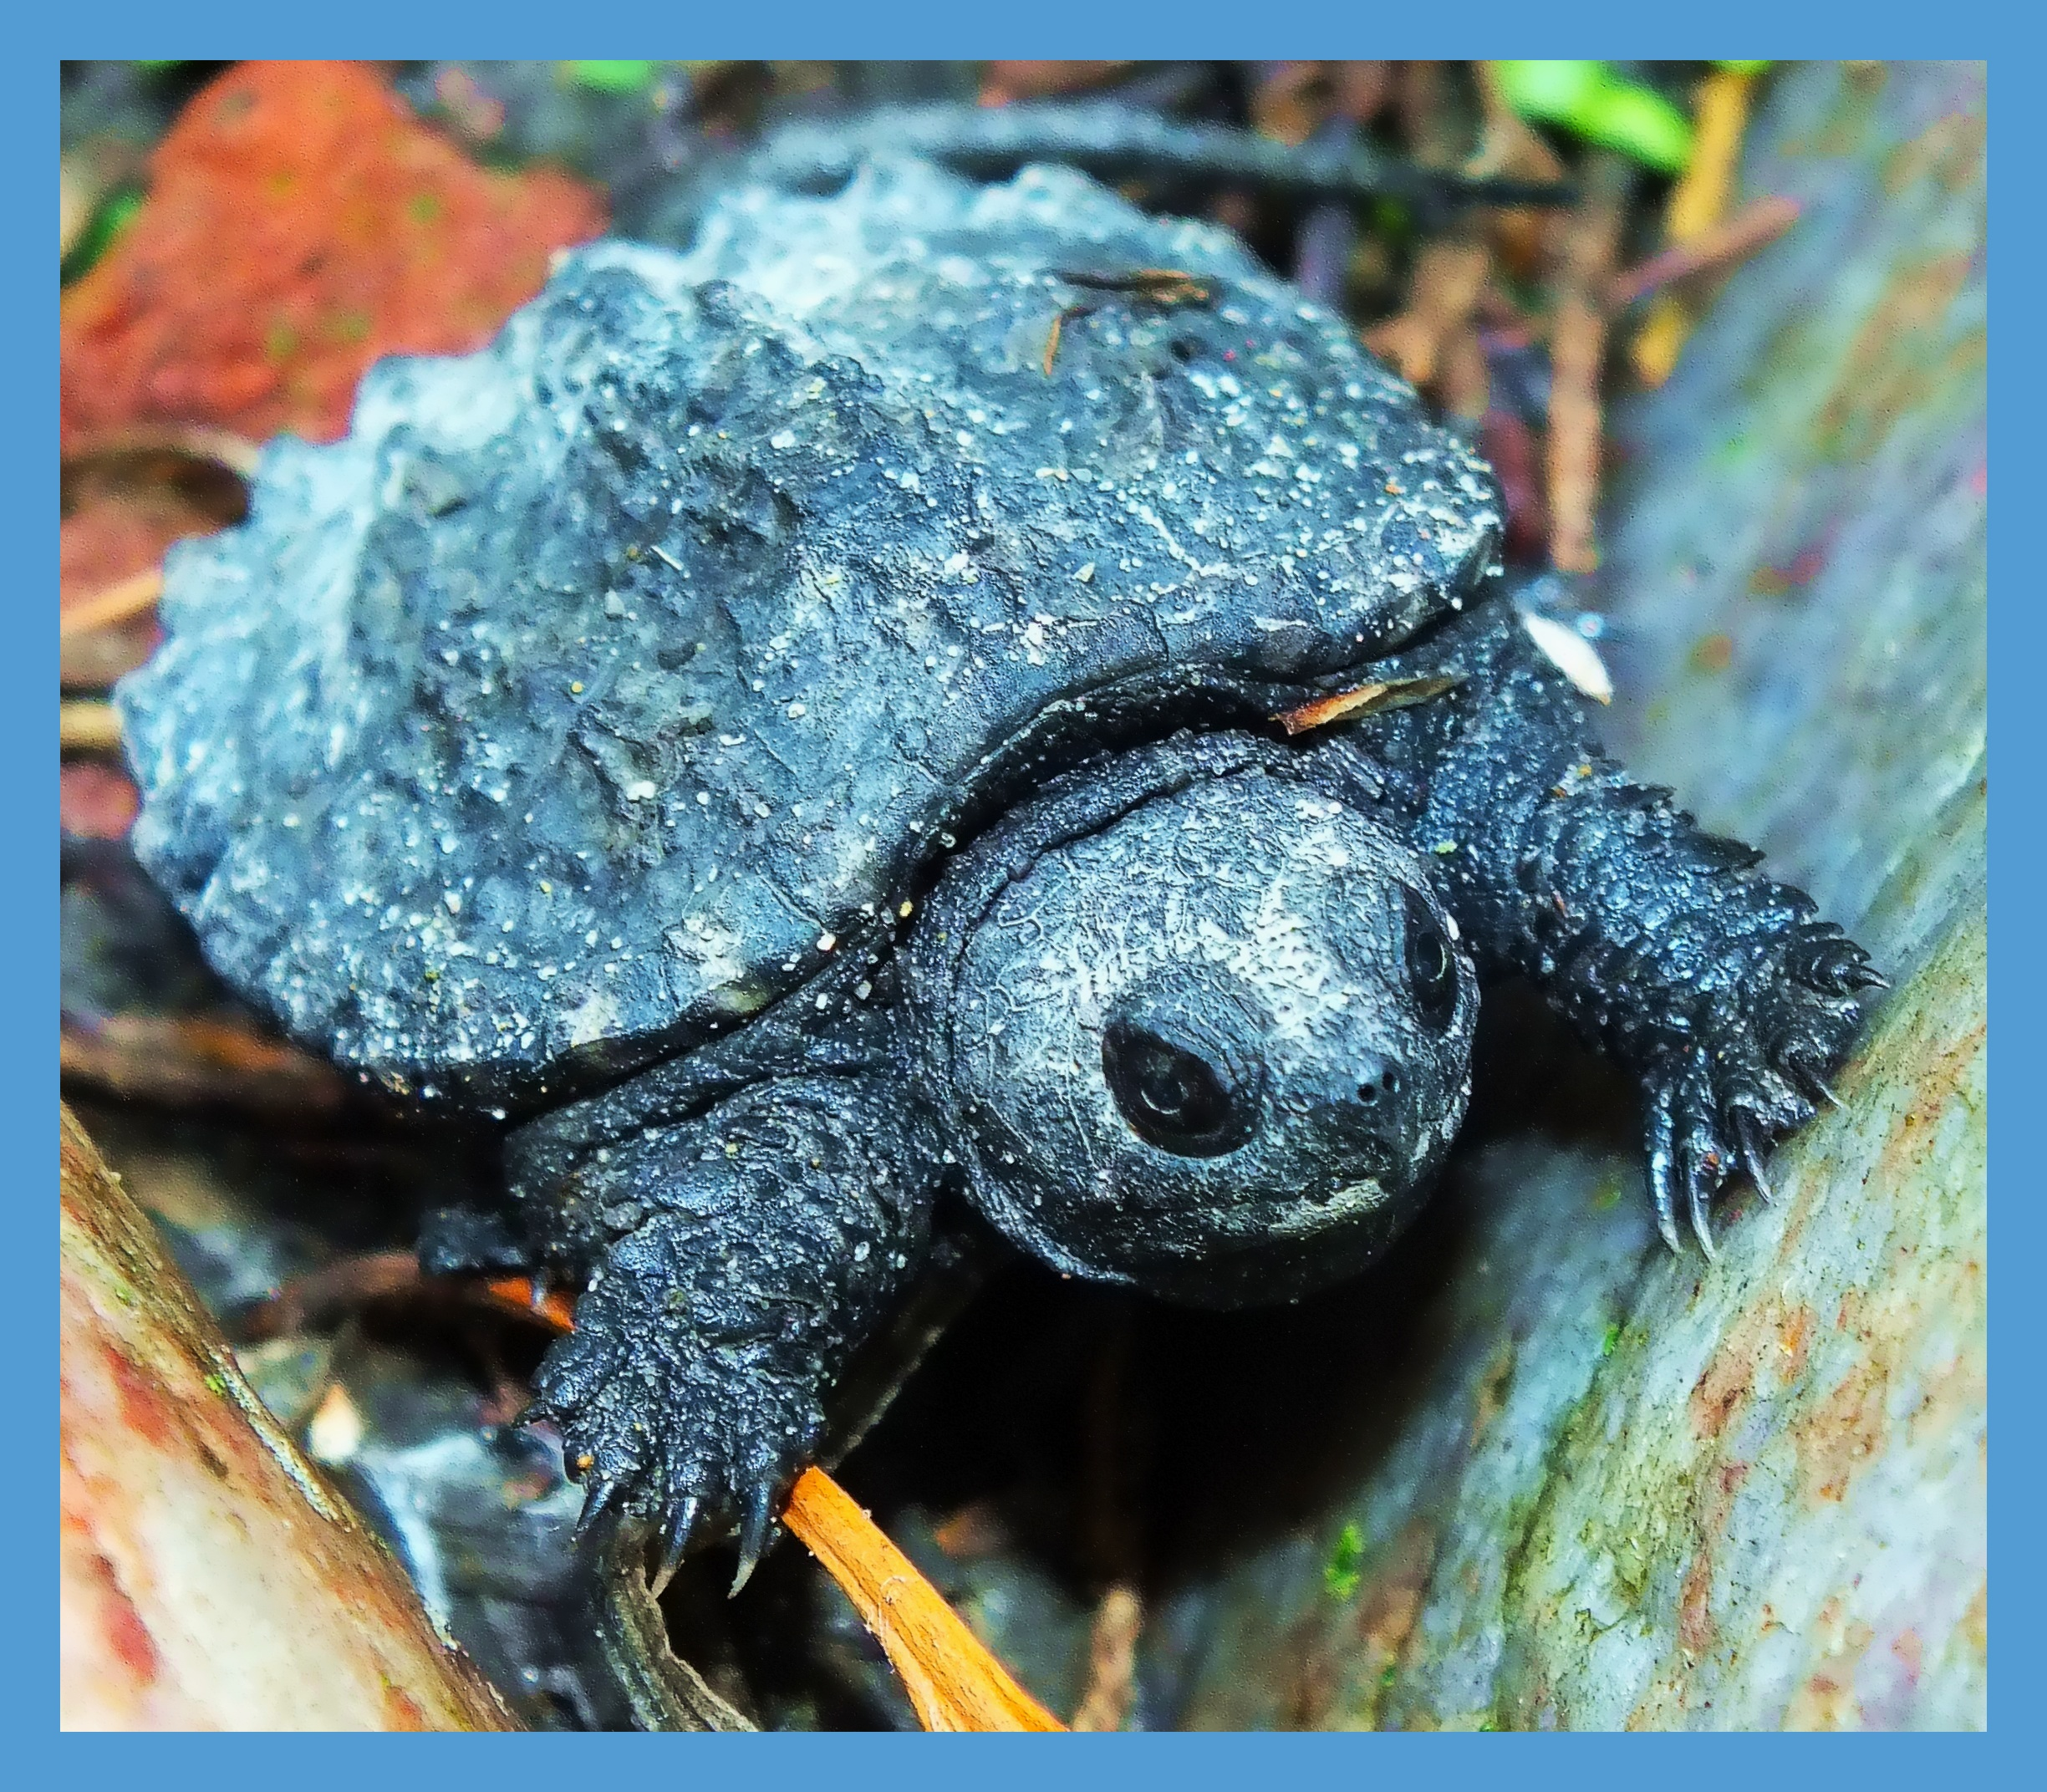 Baby Snapping Turtle (1). Photo by Thomas Peace c. 2015